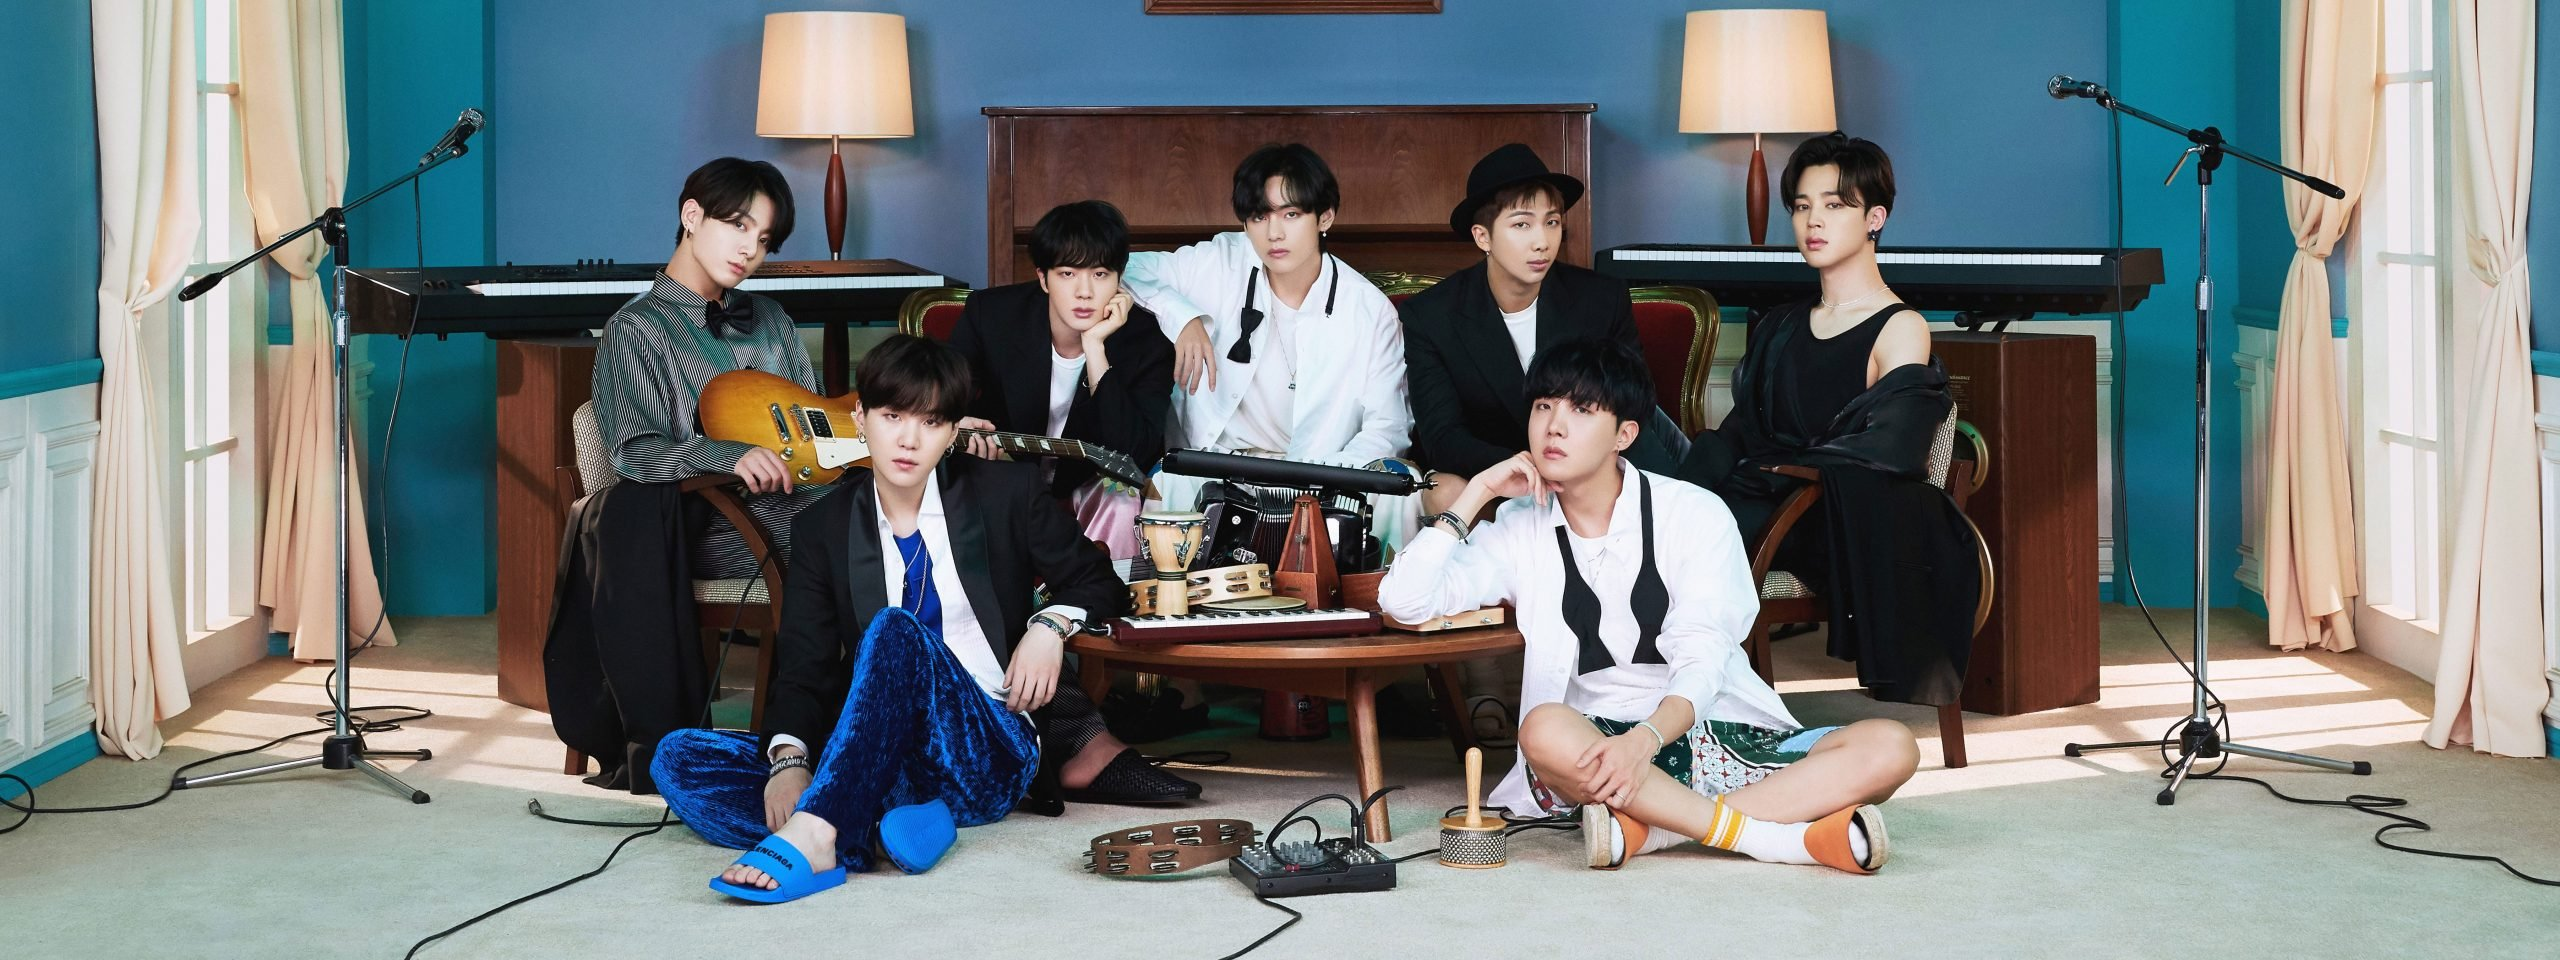 BTS Secure Fifth No.1 Album with BE, Named TIME's 2020 Entertainer of the Year